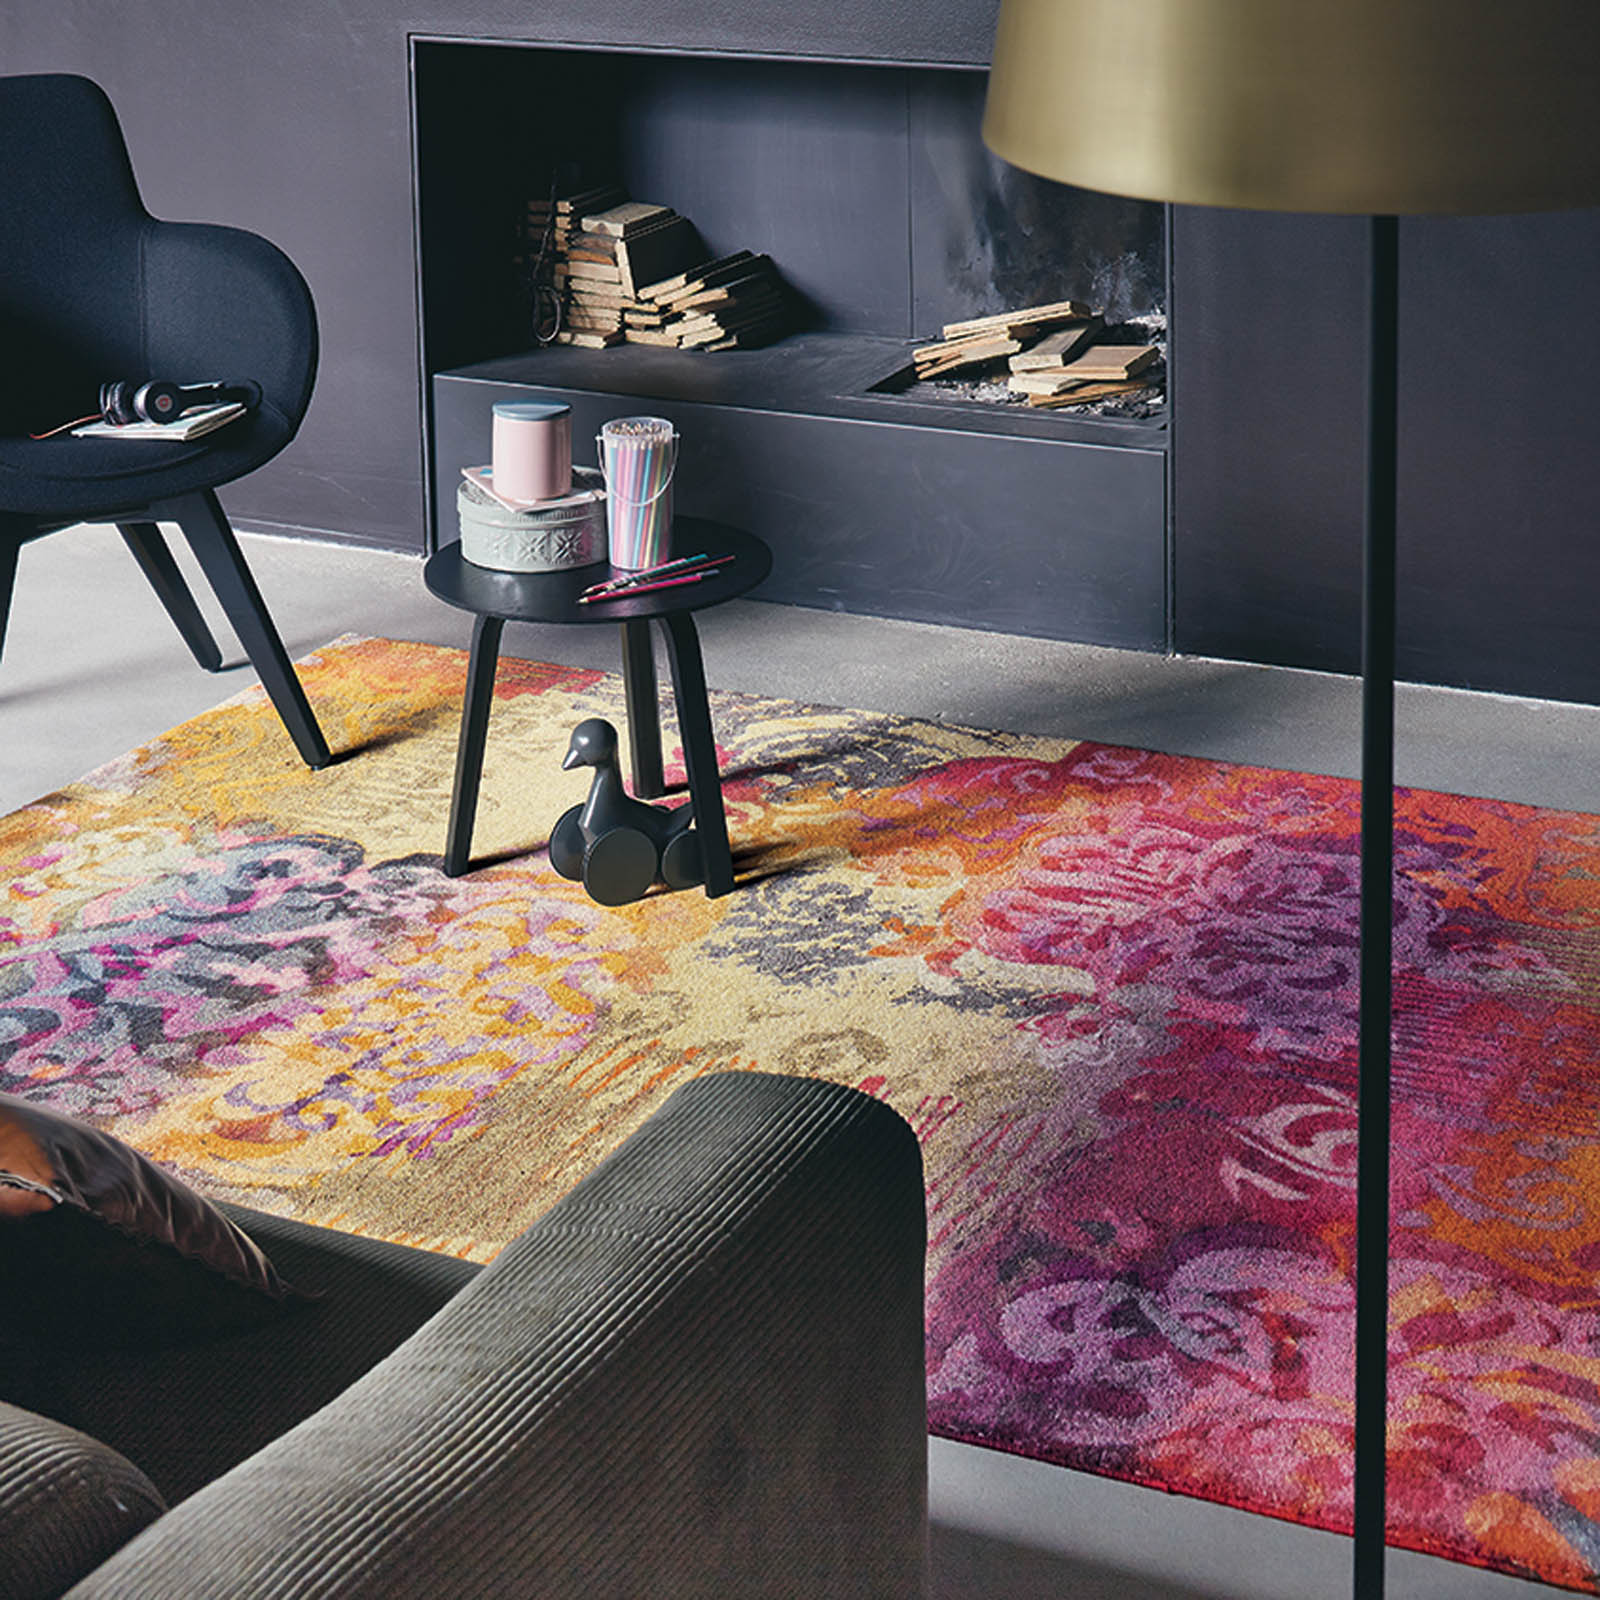 Holograph Bohemian Rugs 16700 by Brink and Campman